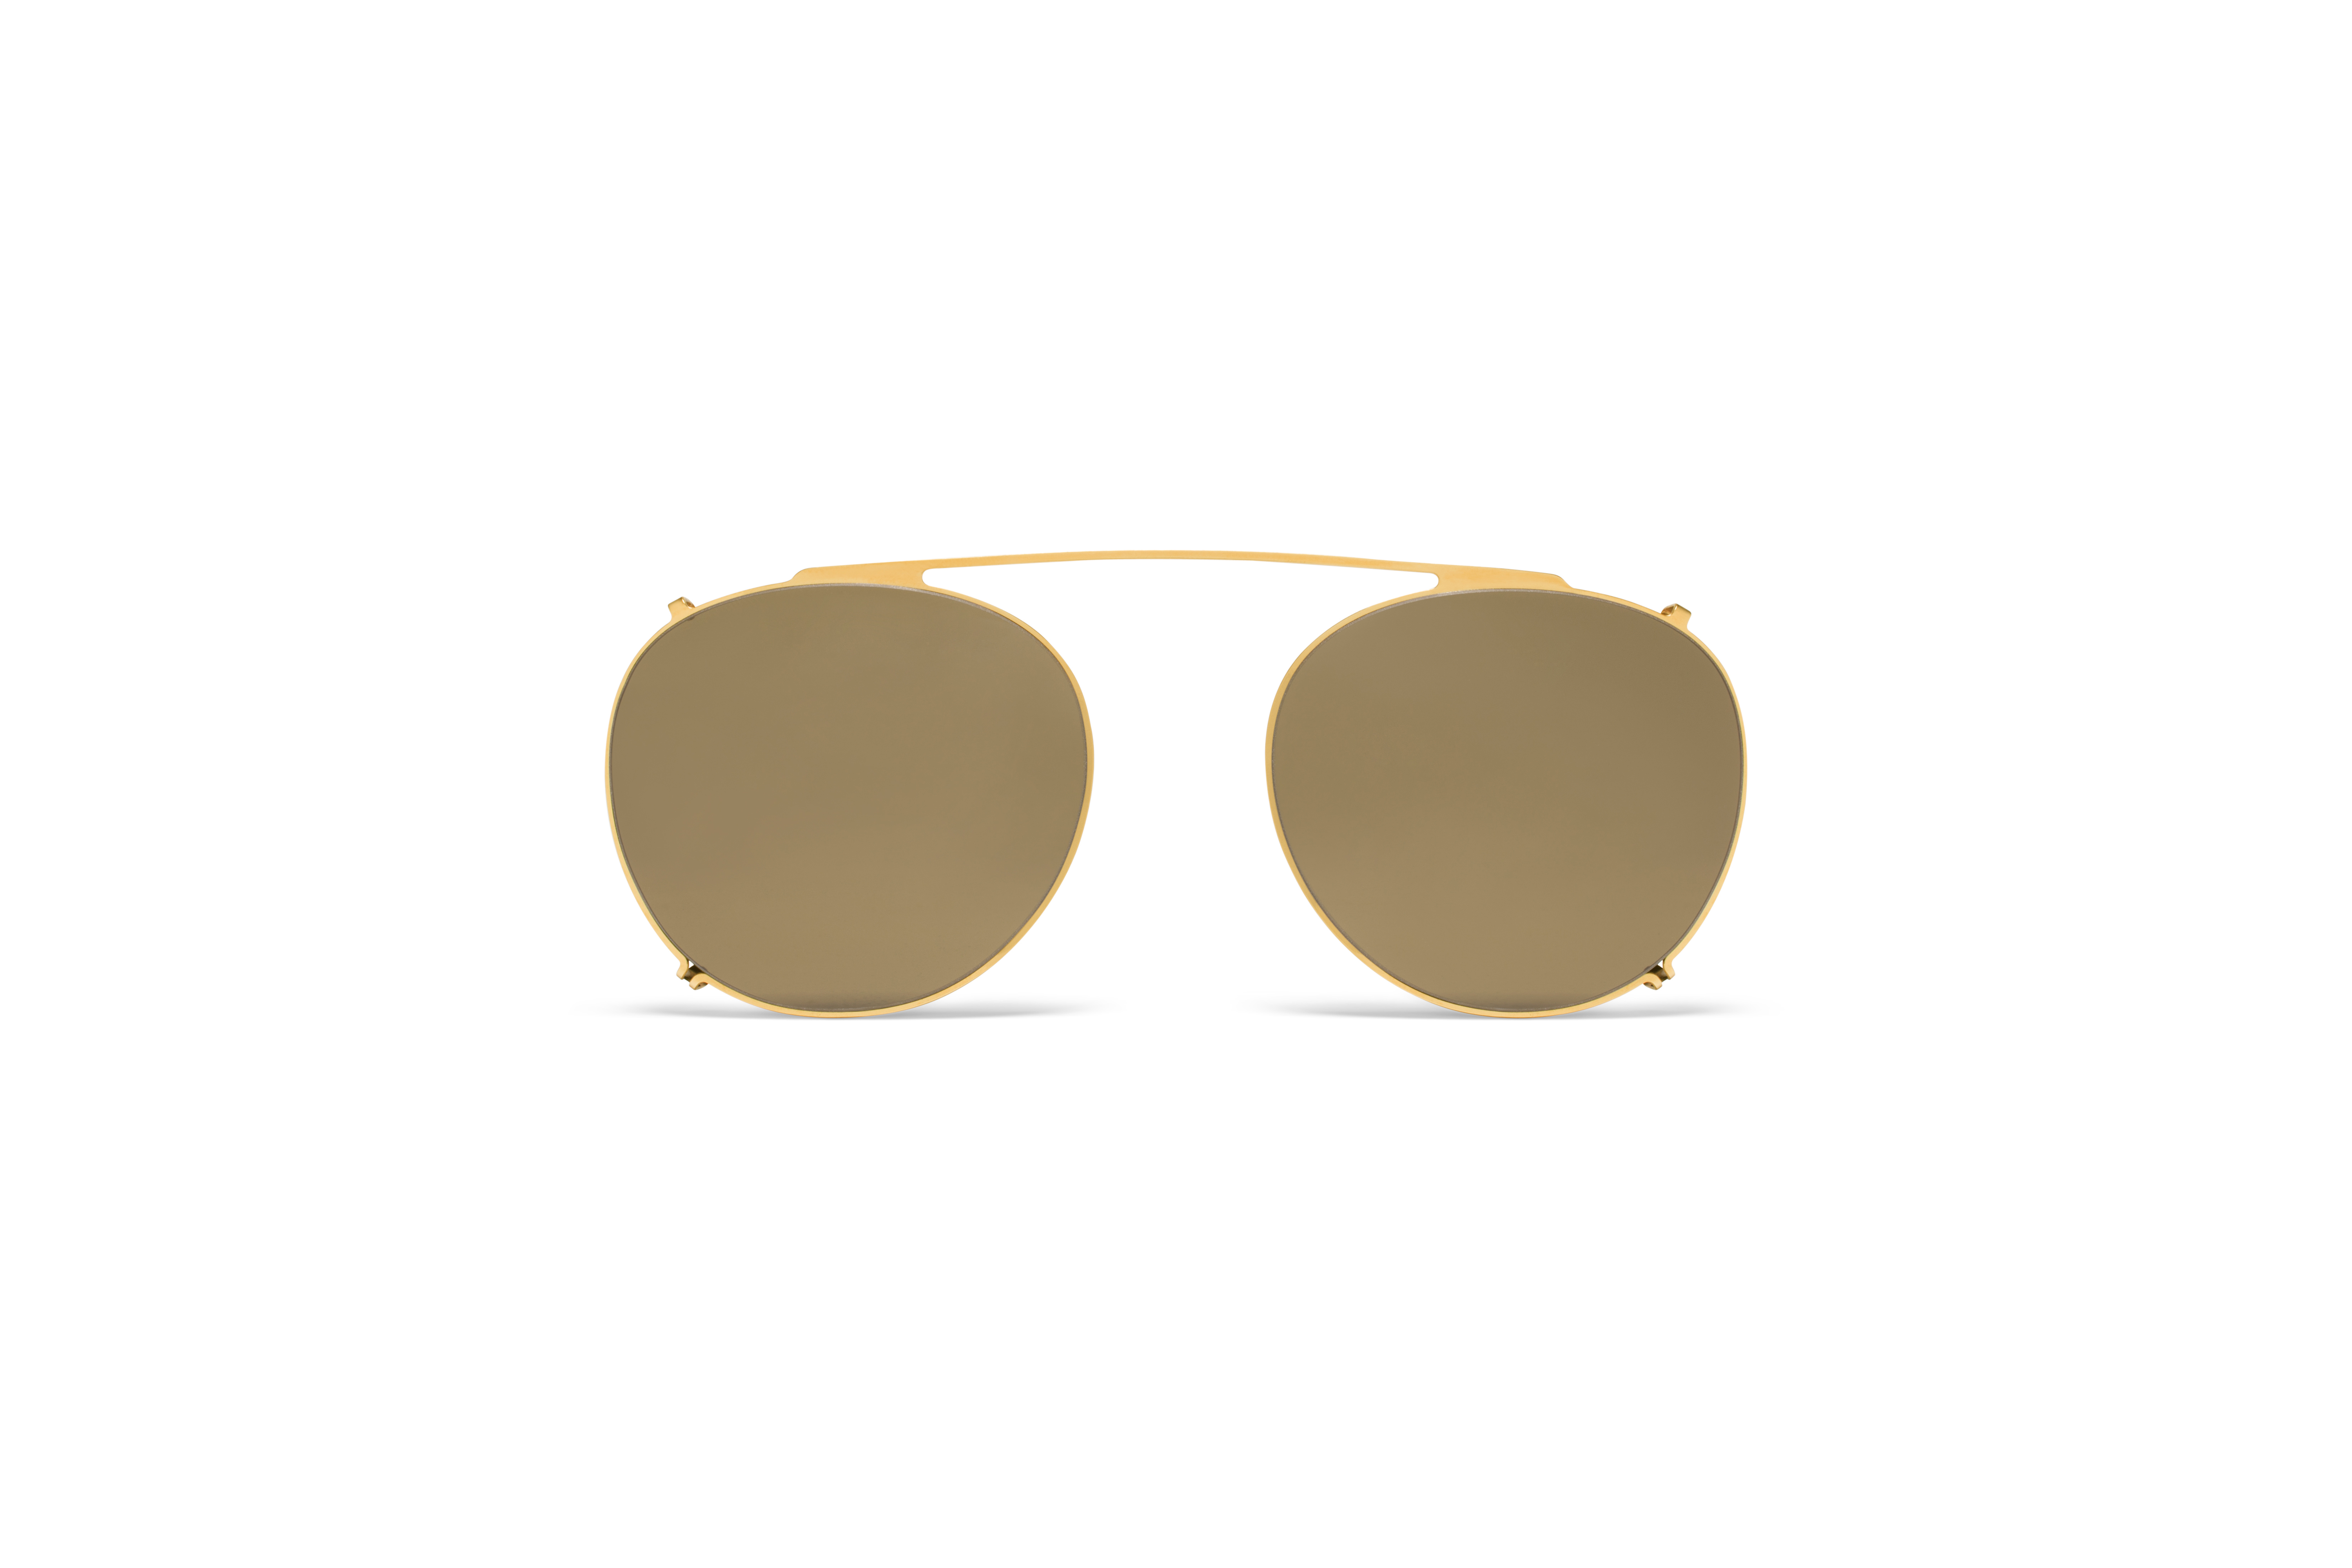 MYKITA Lite Acetate Miki Glossygold Rawbrown Solid58d324e1a41dc